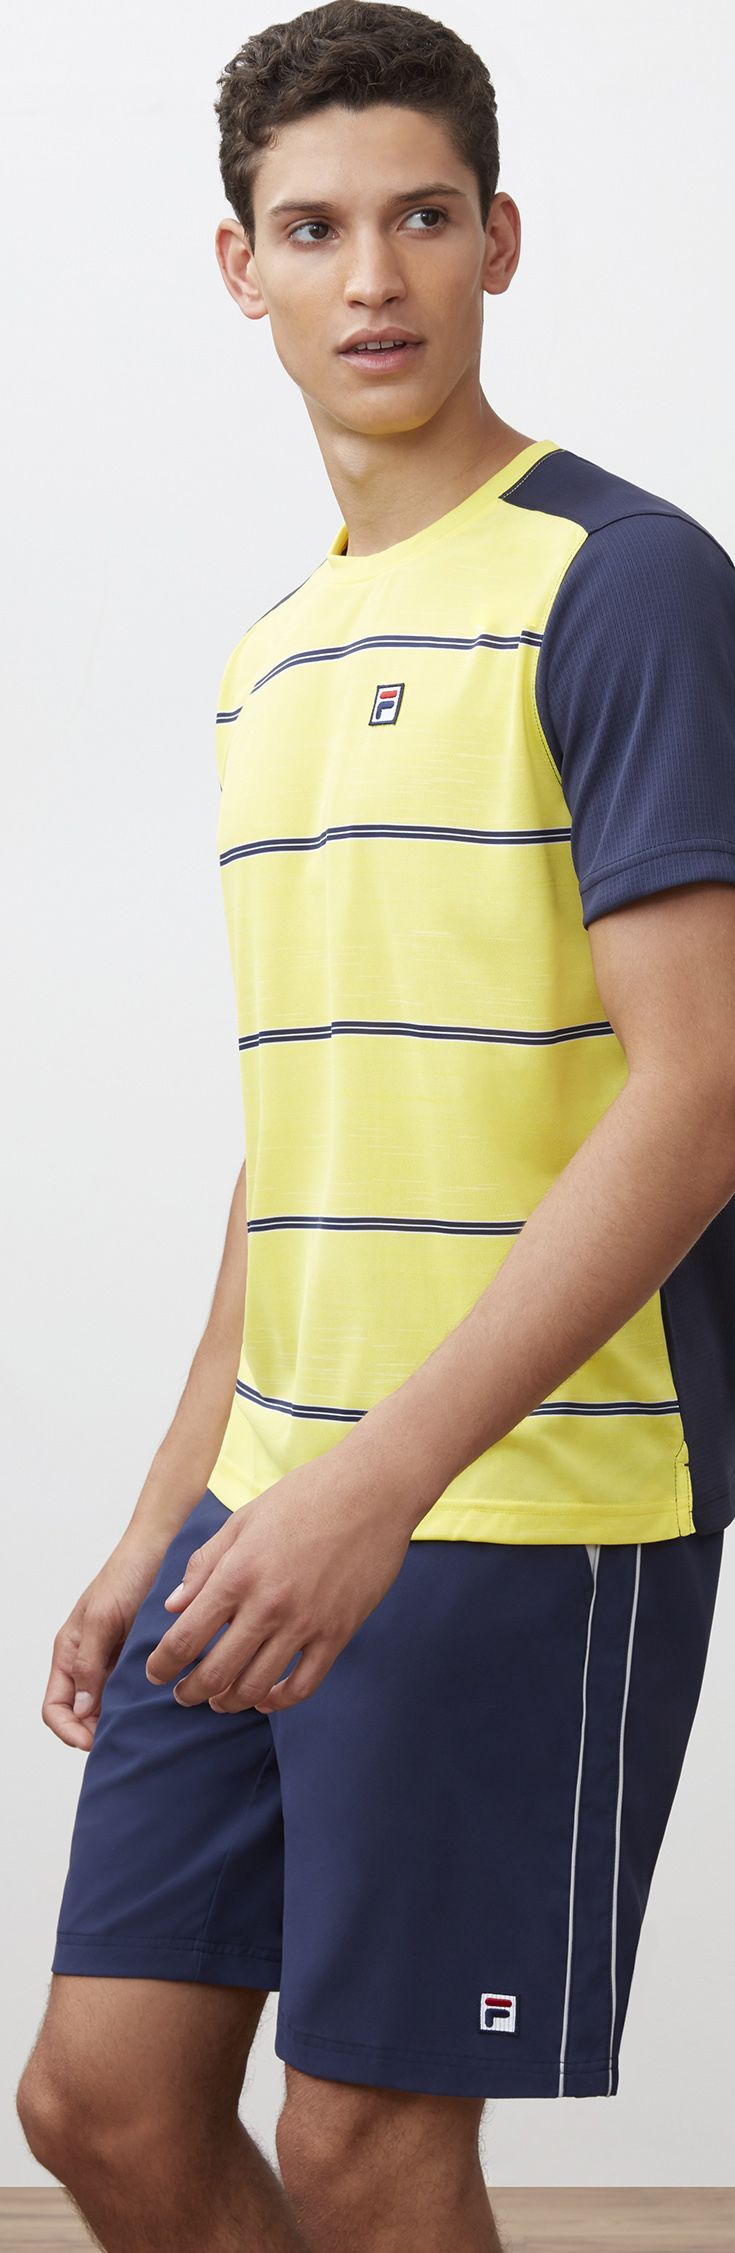 Check out the newest Fila men's Legend Collection of premium tennis apparel for spring 2018 at MidwestSports.com. This tennis line includes performance tennis shirts, polos, shorts, and warm ups in navy, yellow, and grey colors perfect for the tennis season.